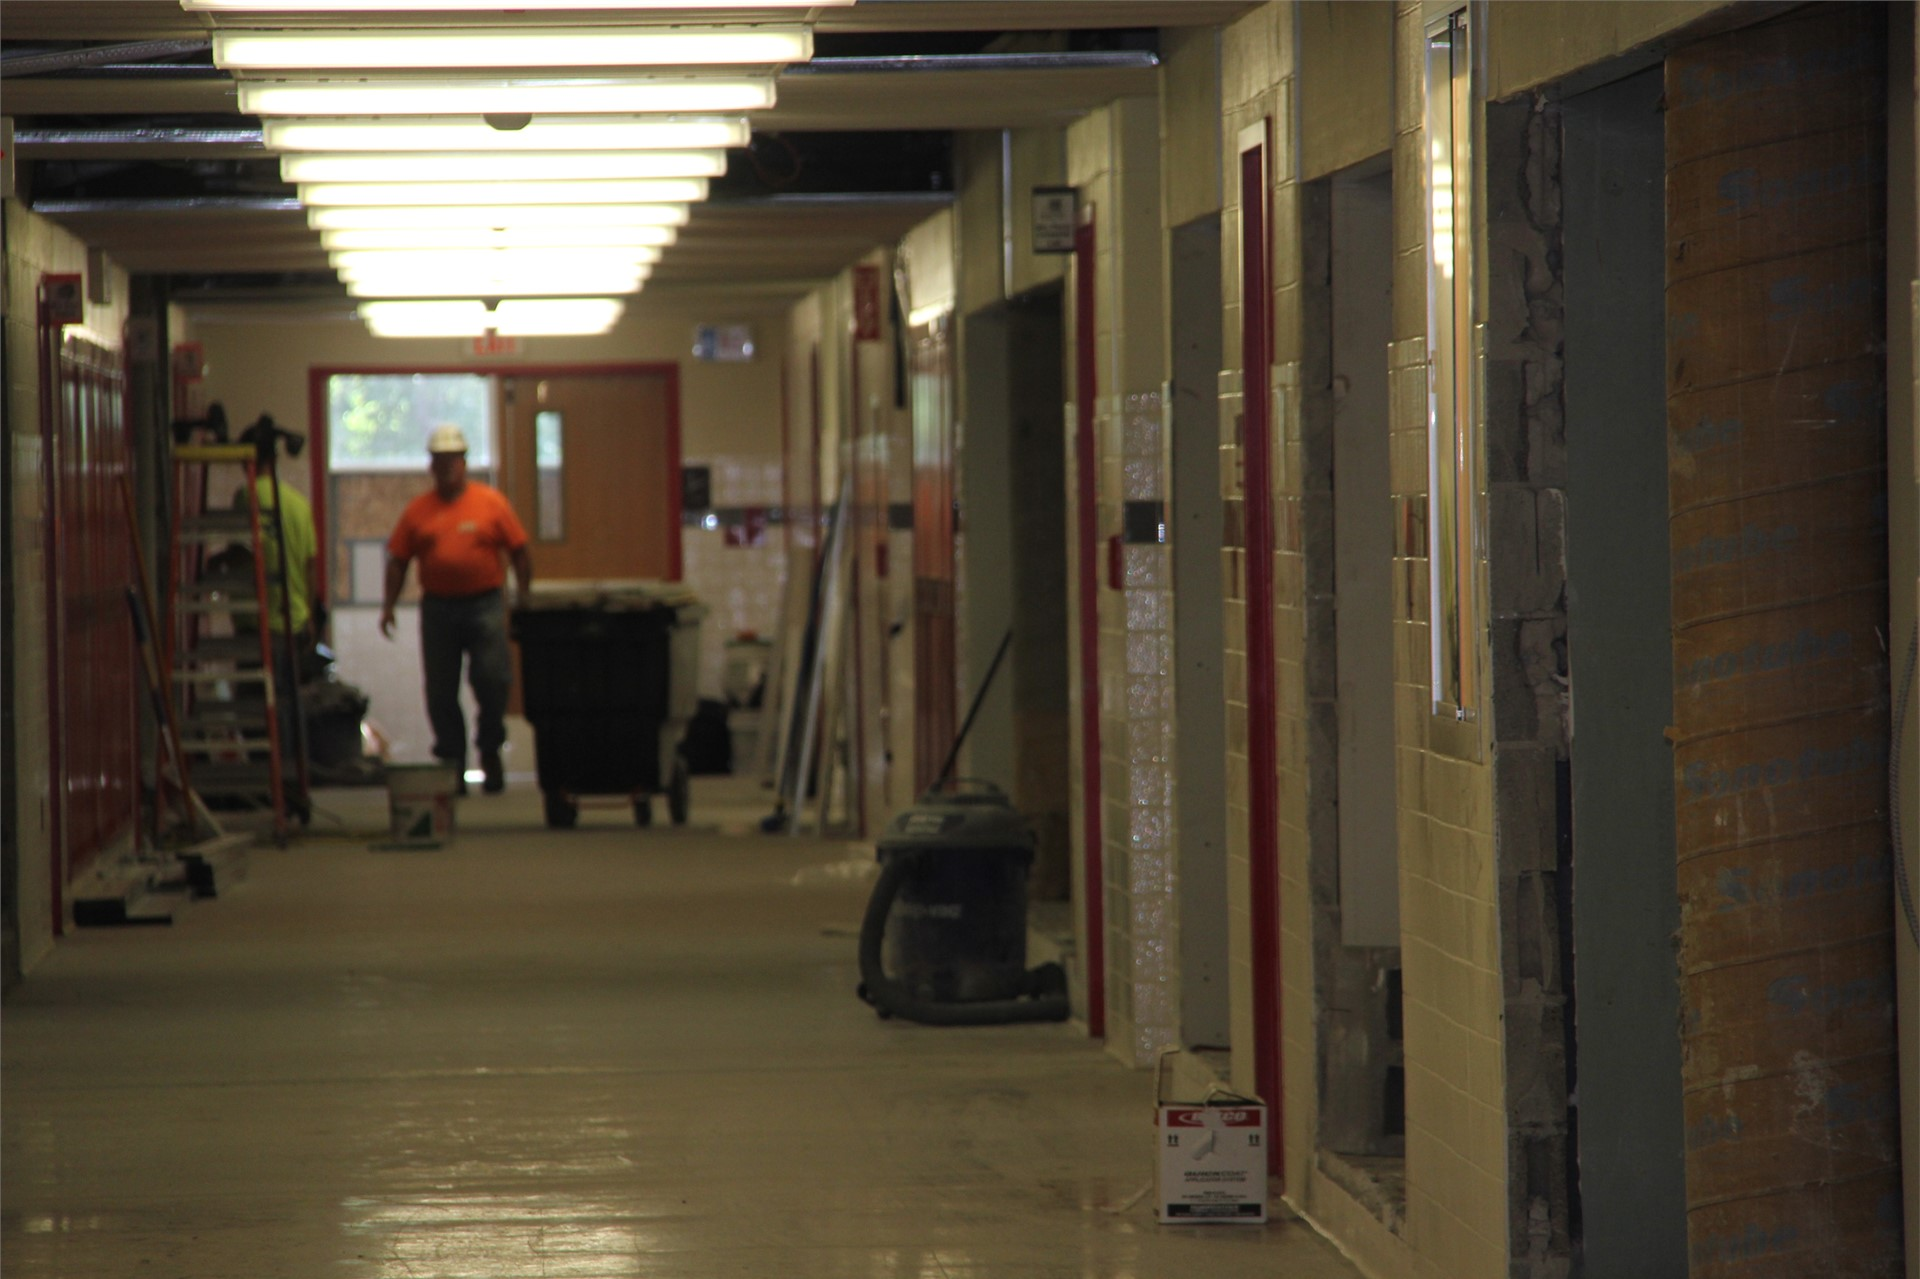 far shot of people working on construction in hallway